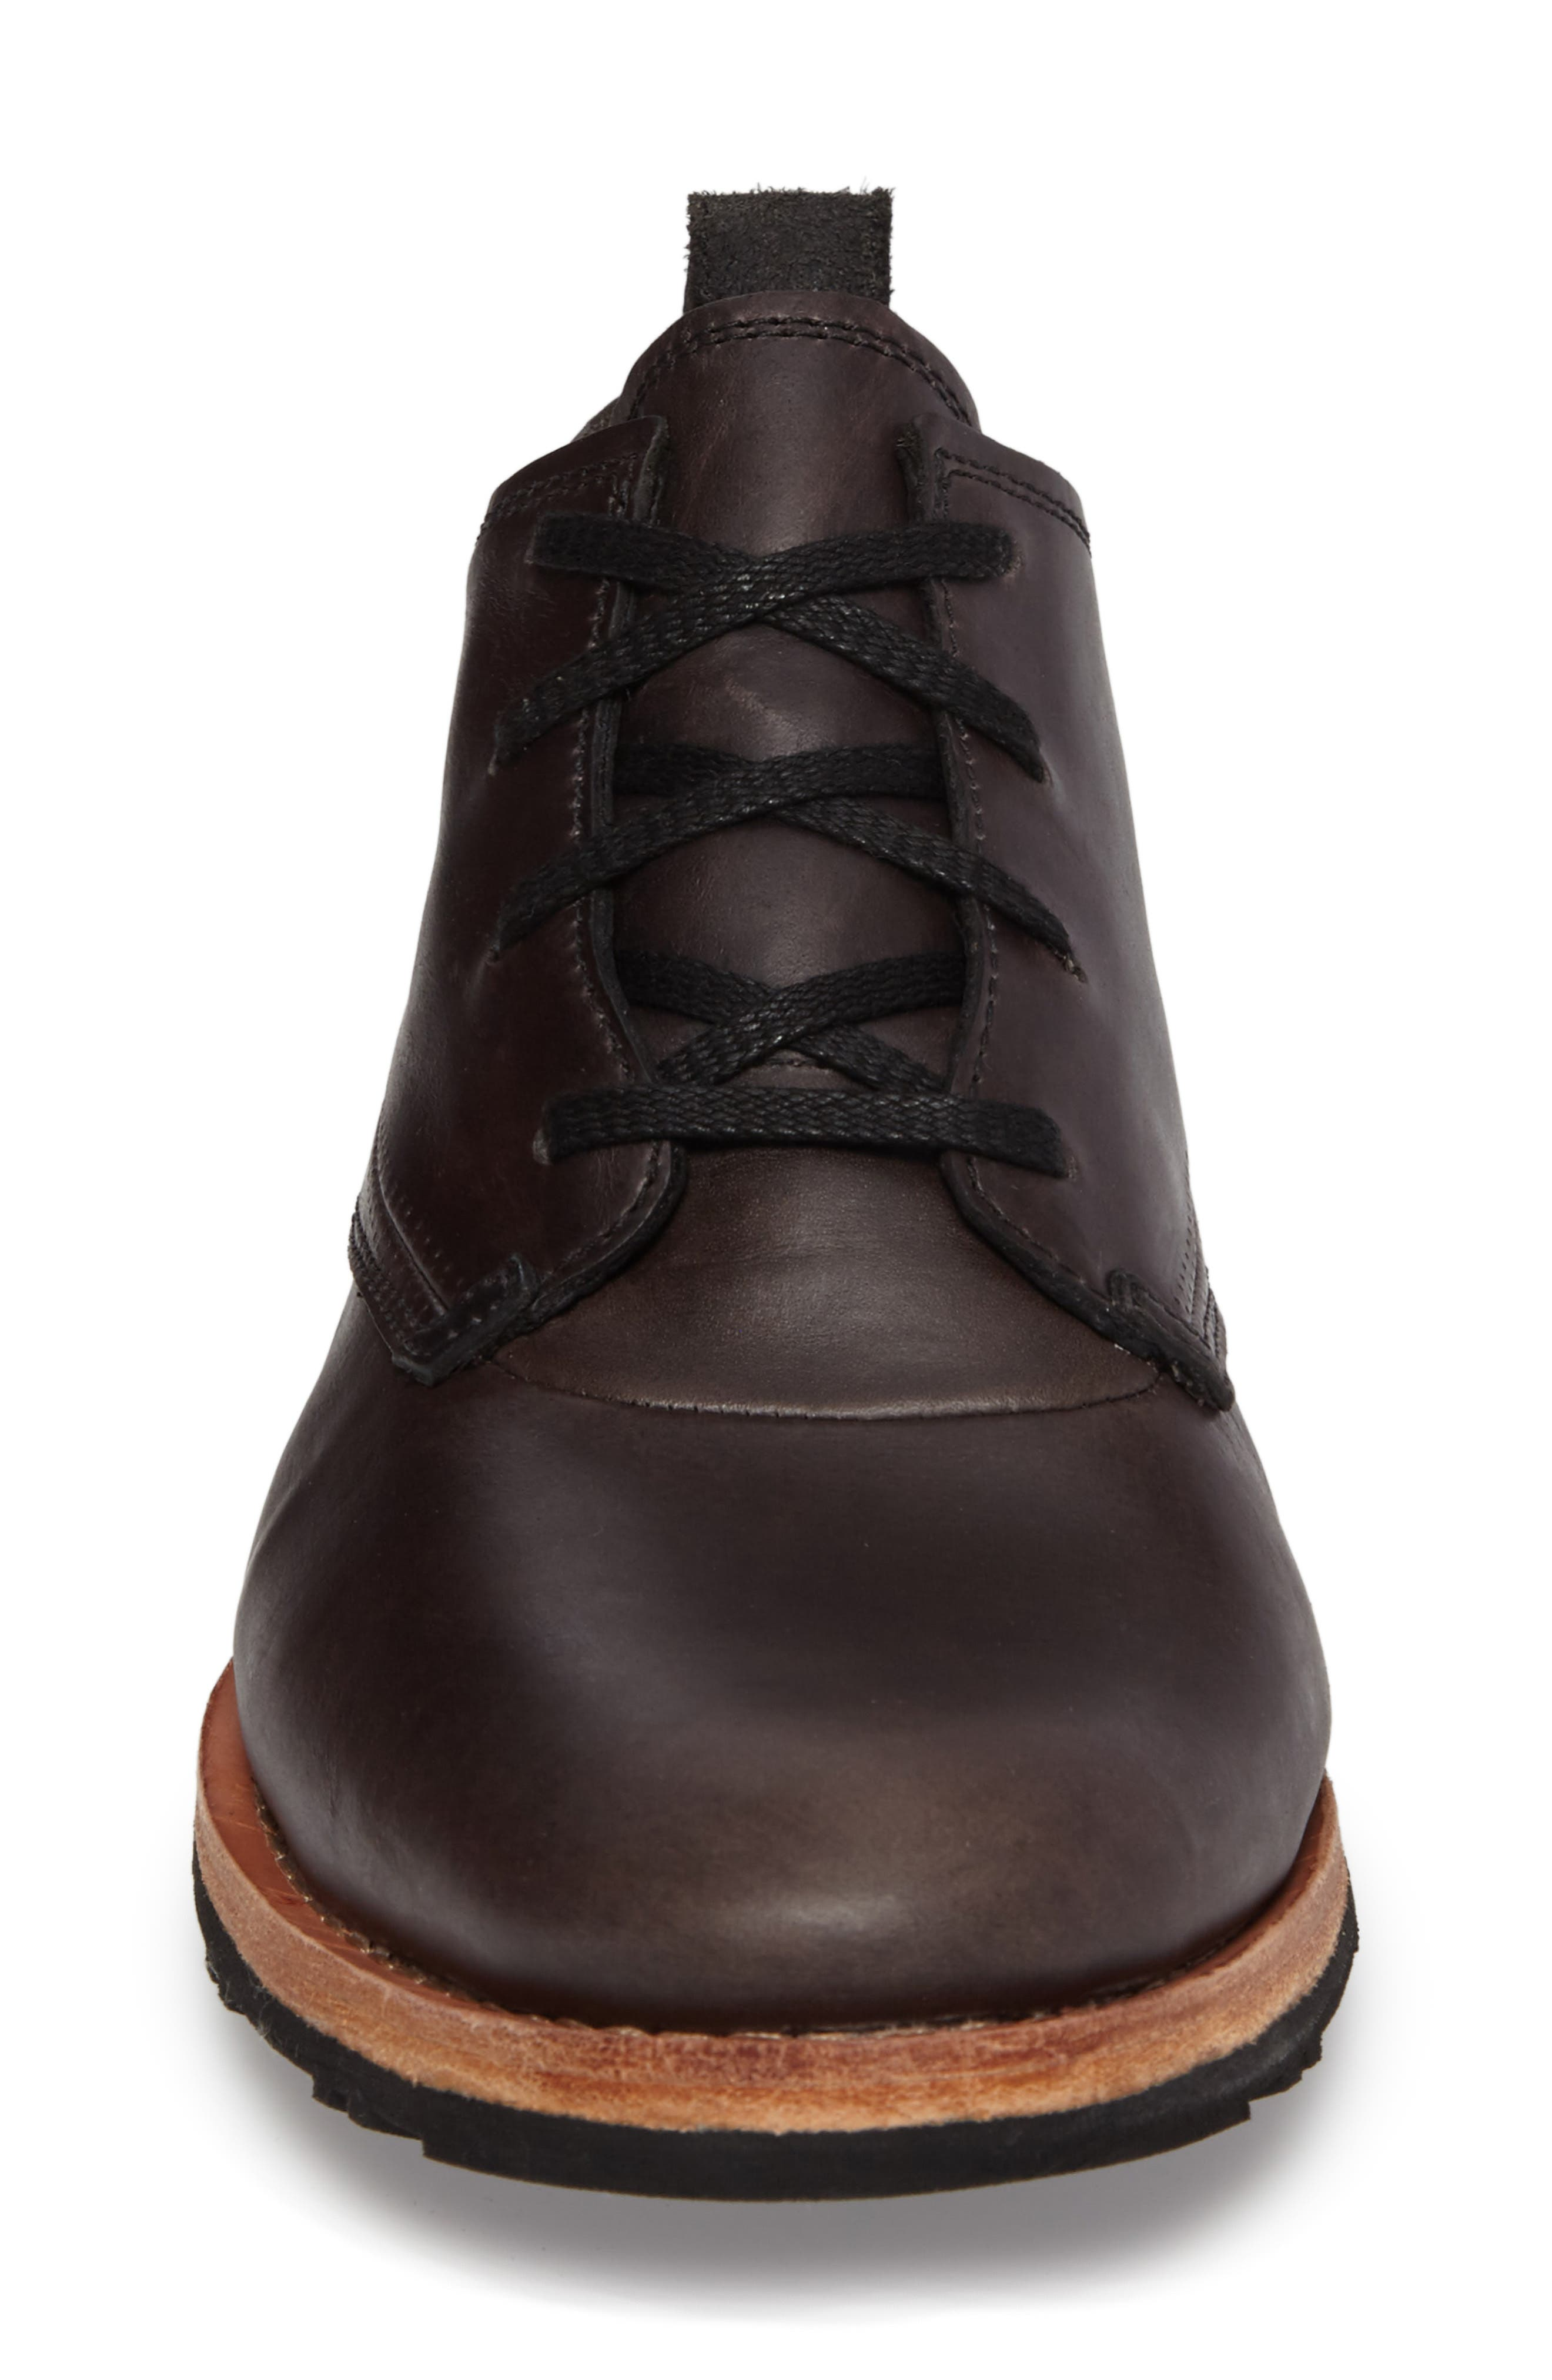 'Bardstown' Chukka Boot,                             Alternate thumbnail 4, color,                             002